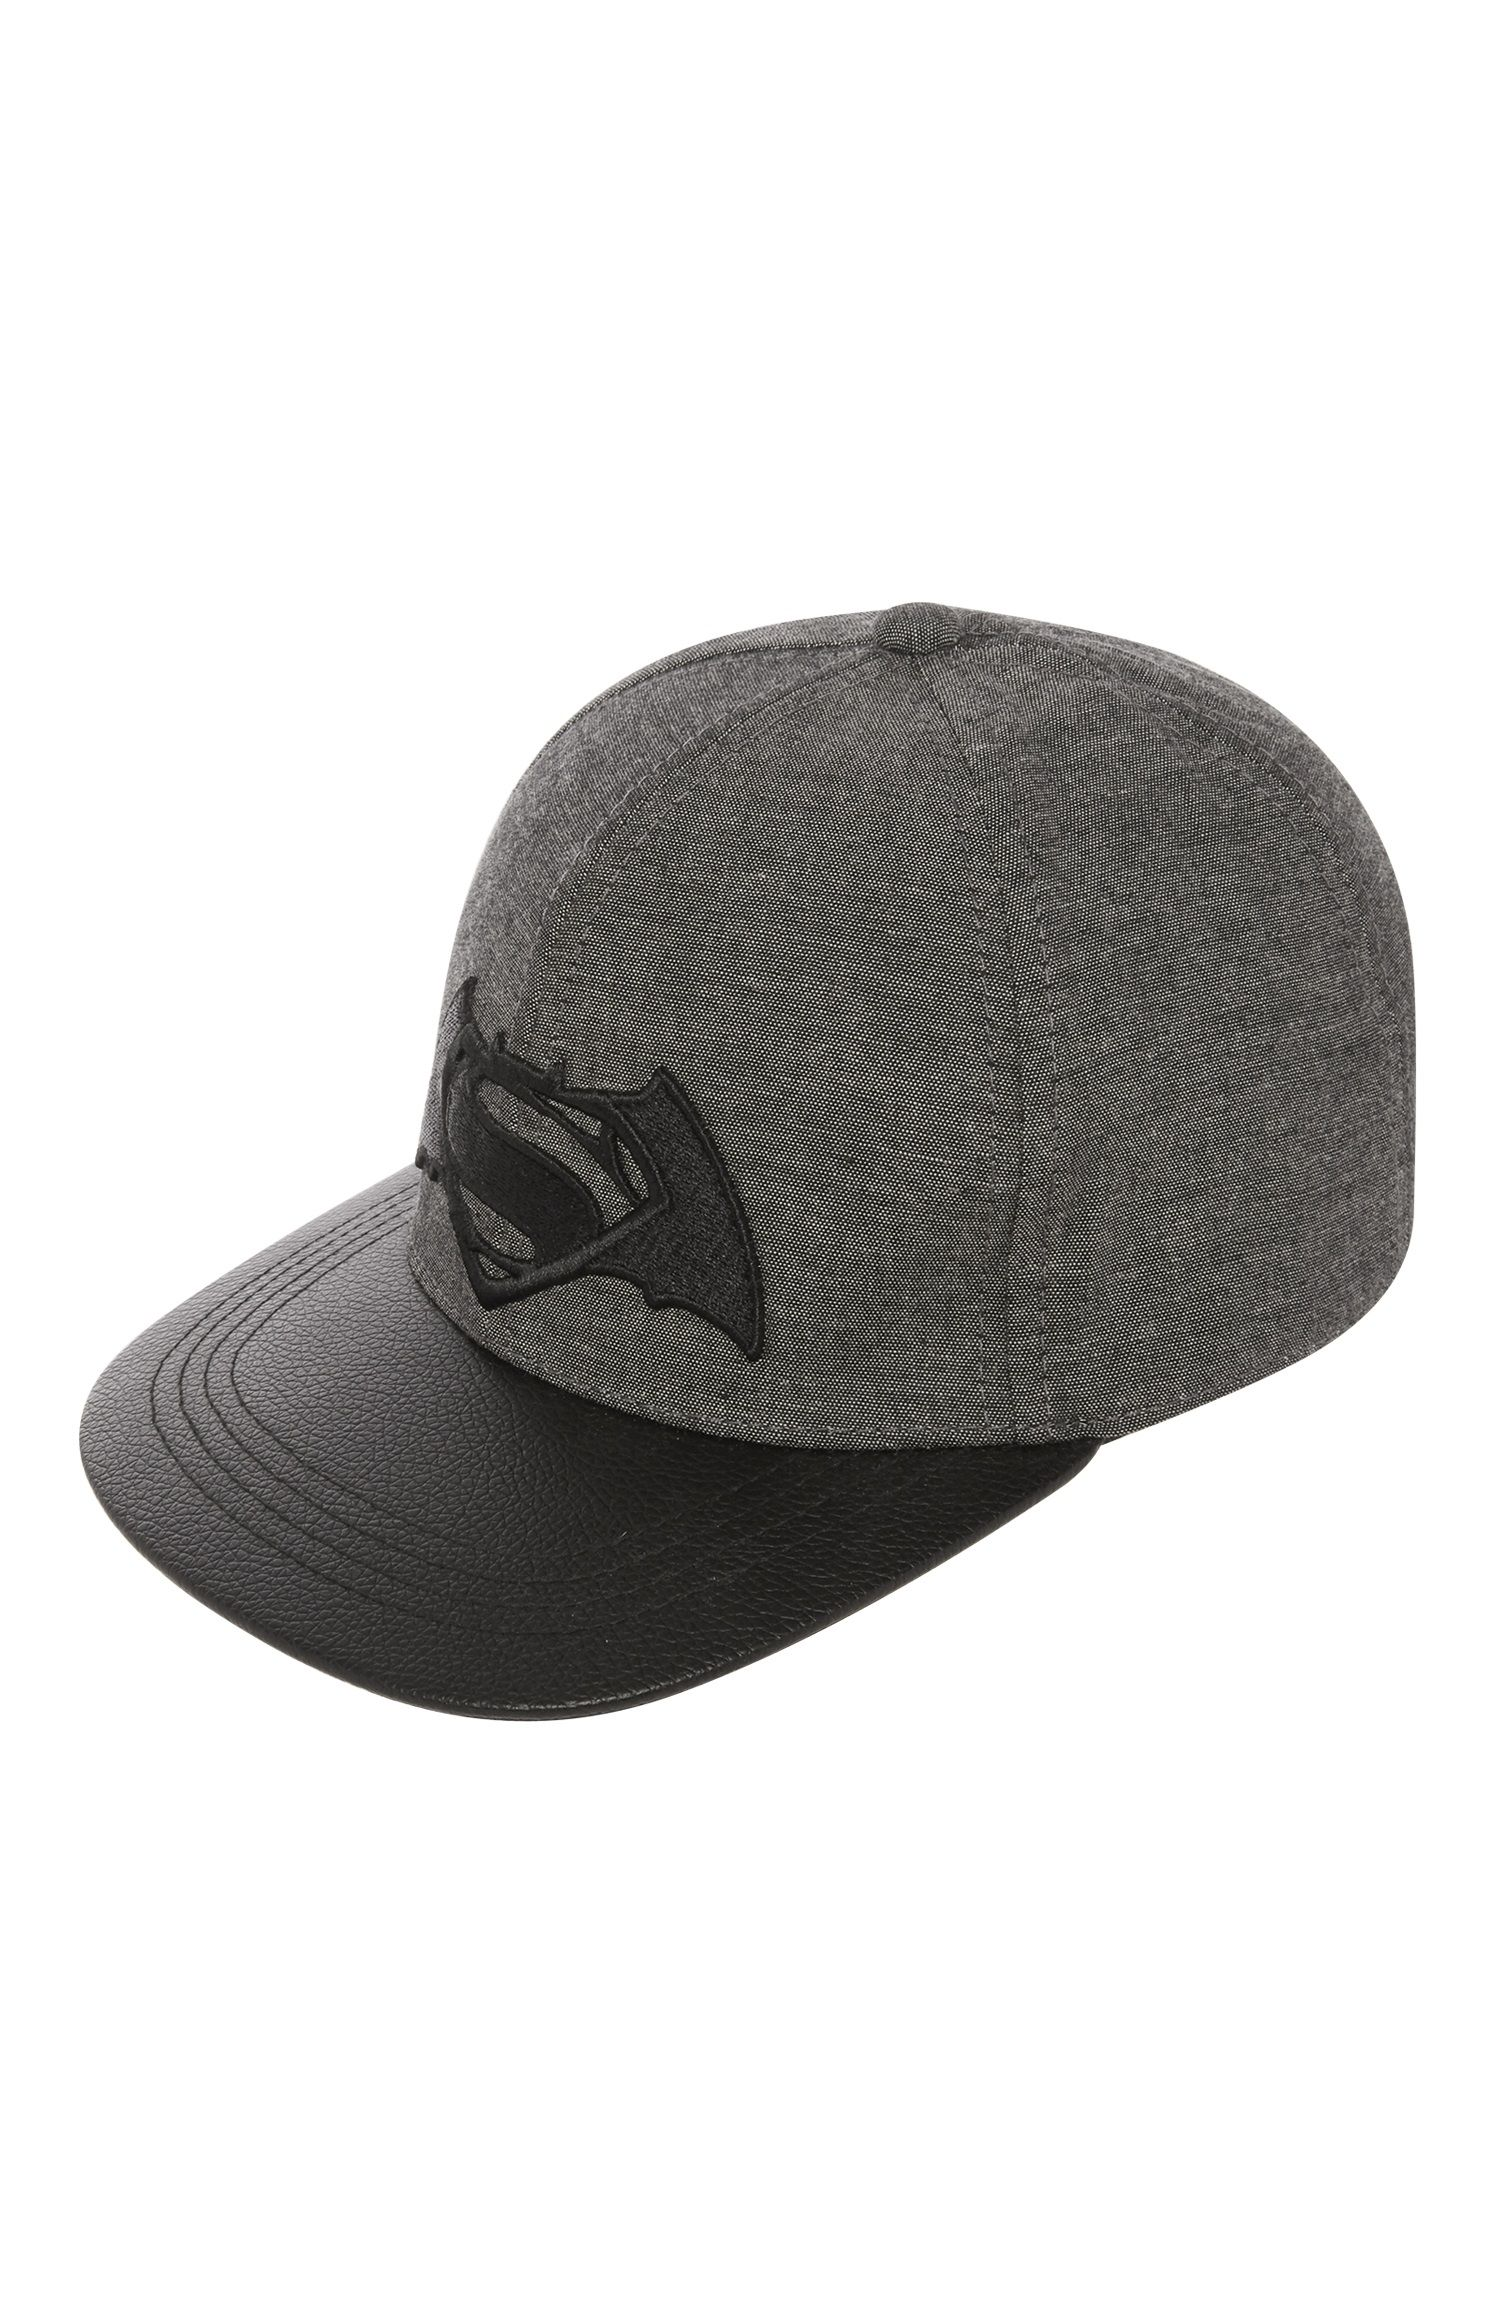 meilleure sélection 0d73d 3533d Primark - Grey Batman Vs Superman Trucker Hat | Primark ...